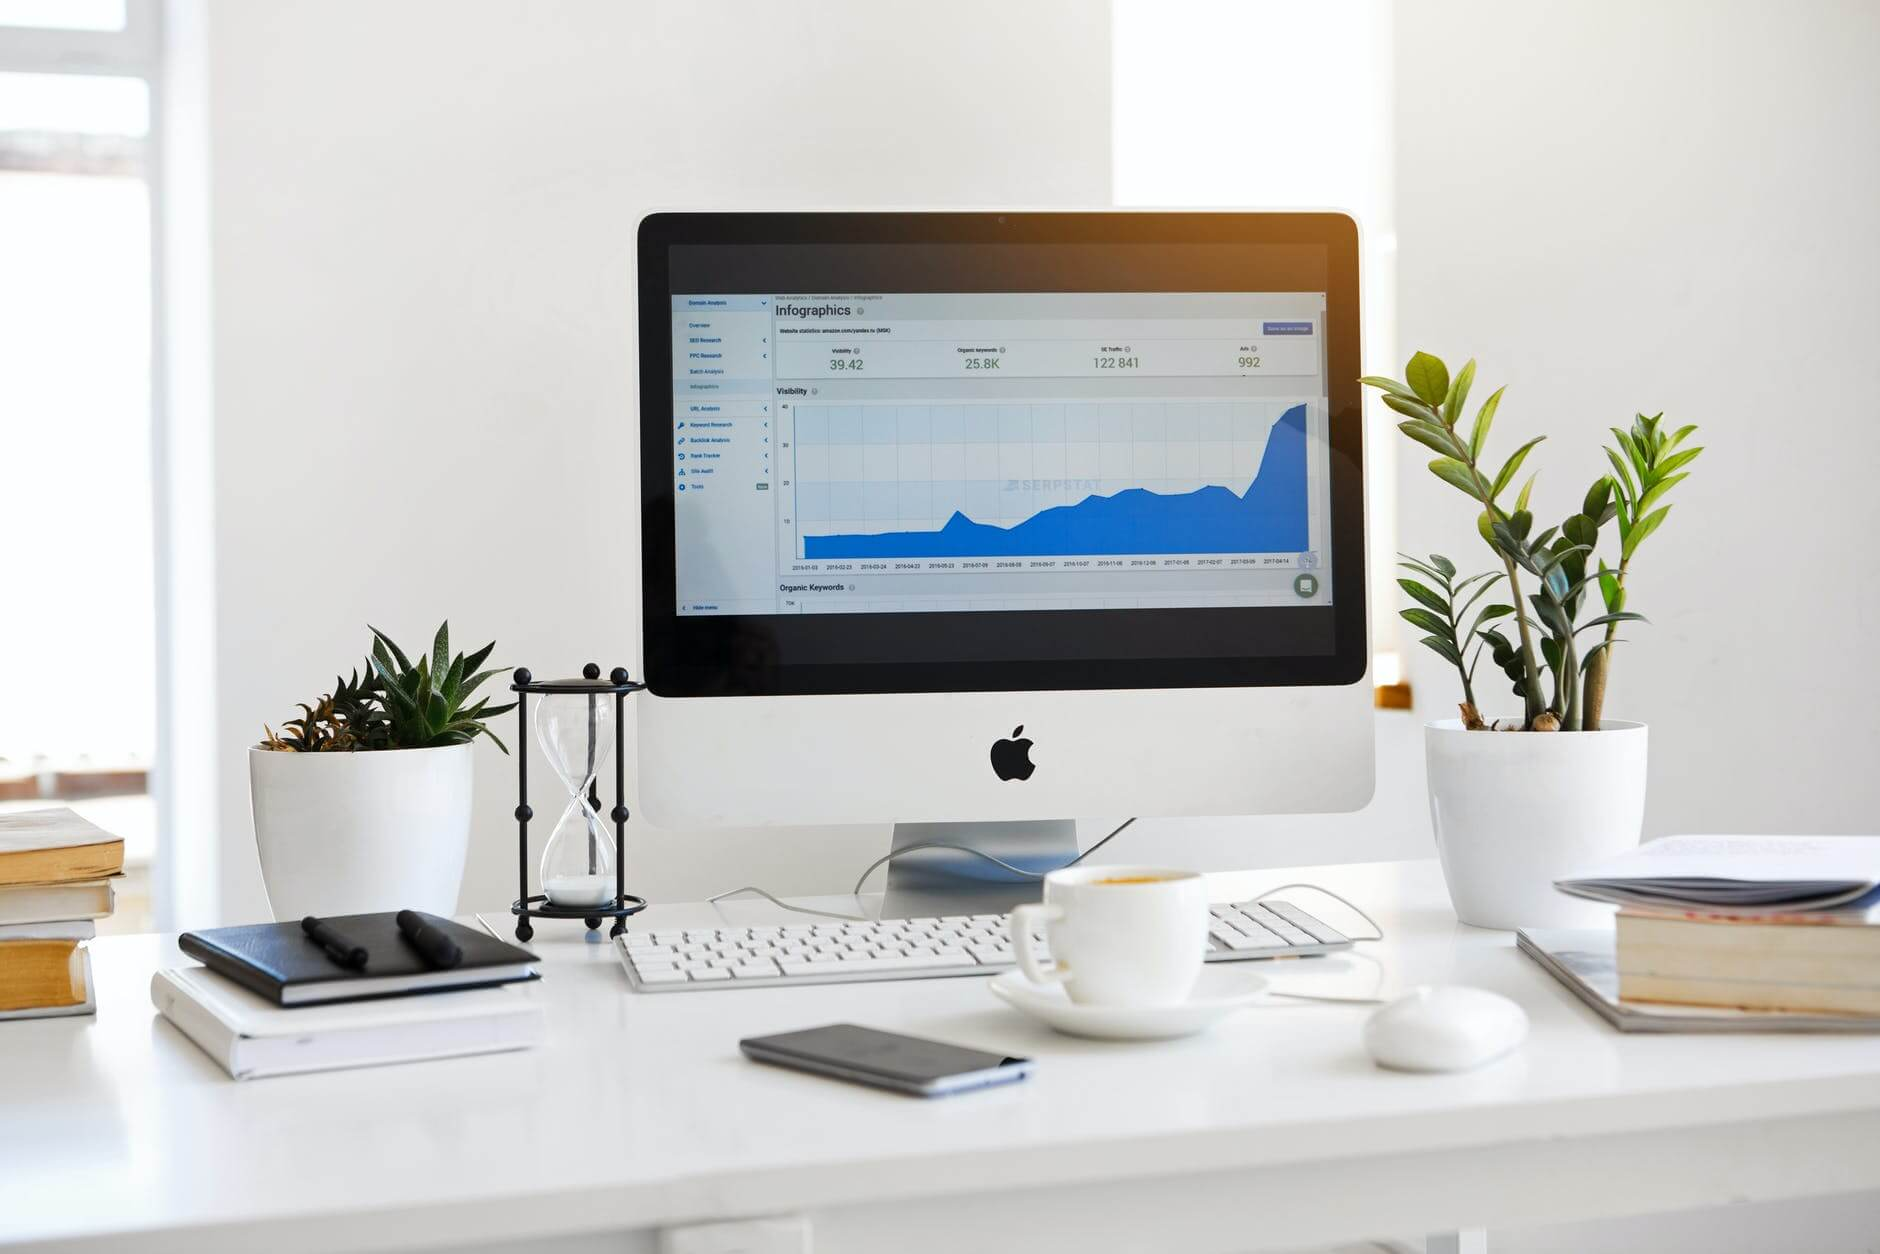 How to send data to Google Analytics in Python with PyGAMP